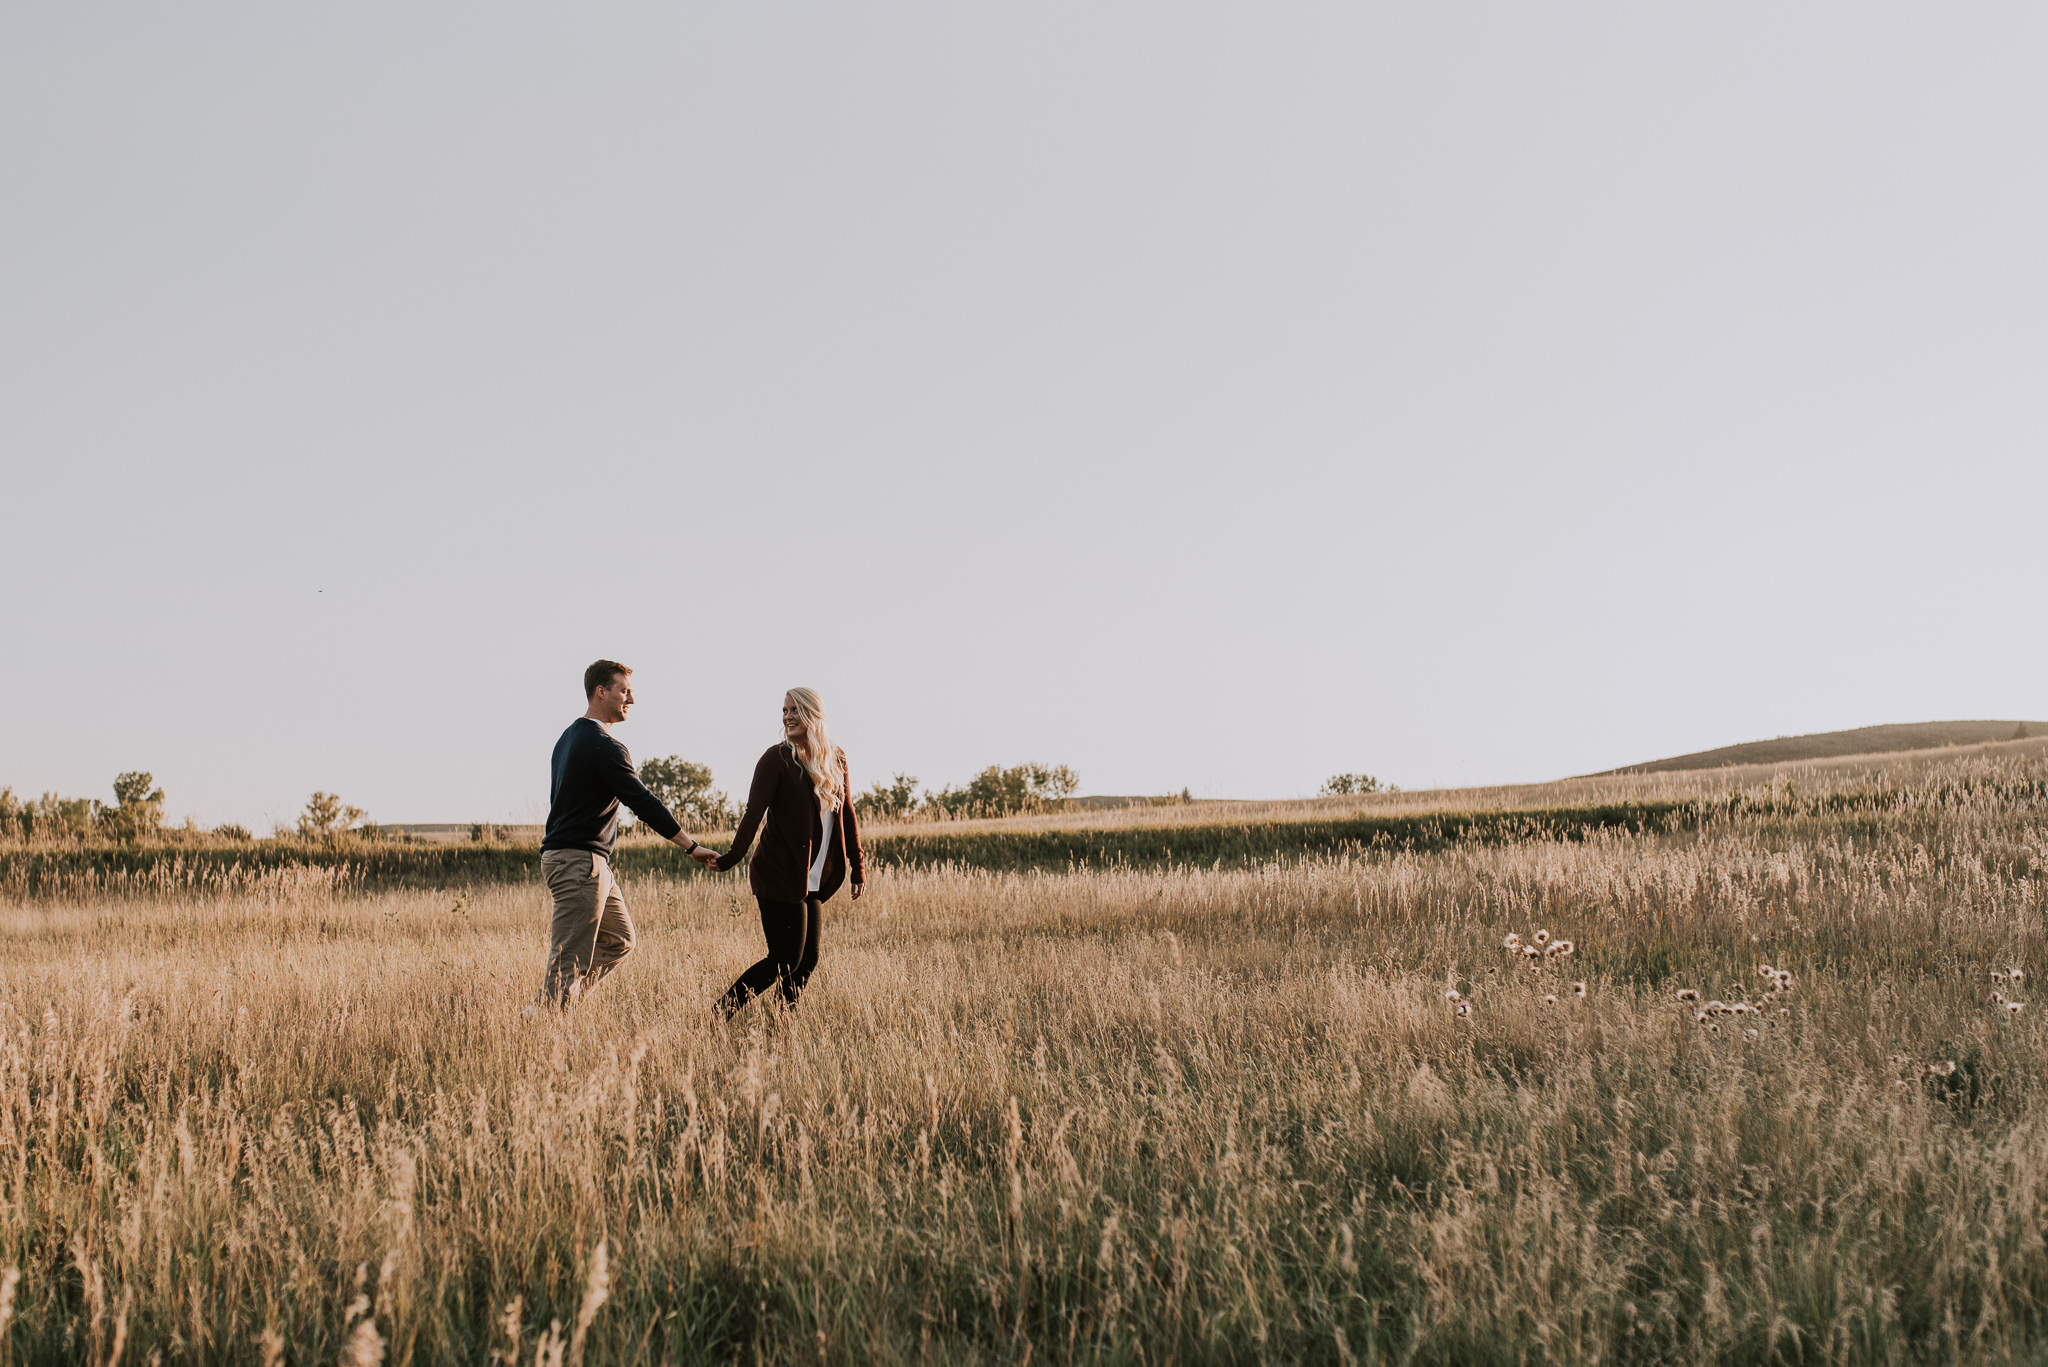 fort-lincoln-state-park-engagement-wedding-photography-23.jpg